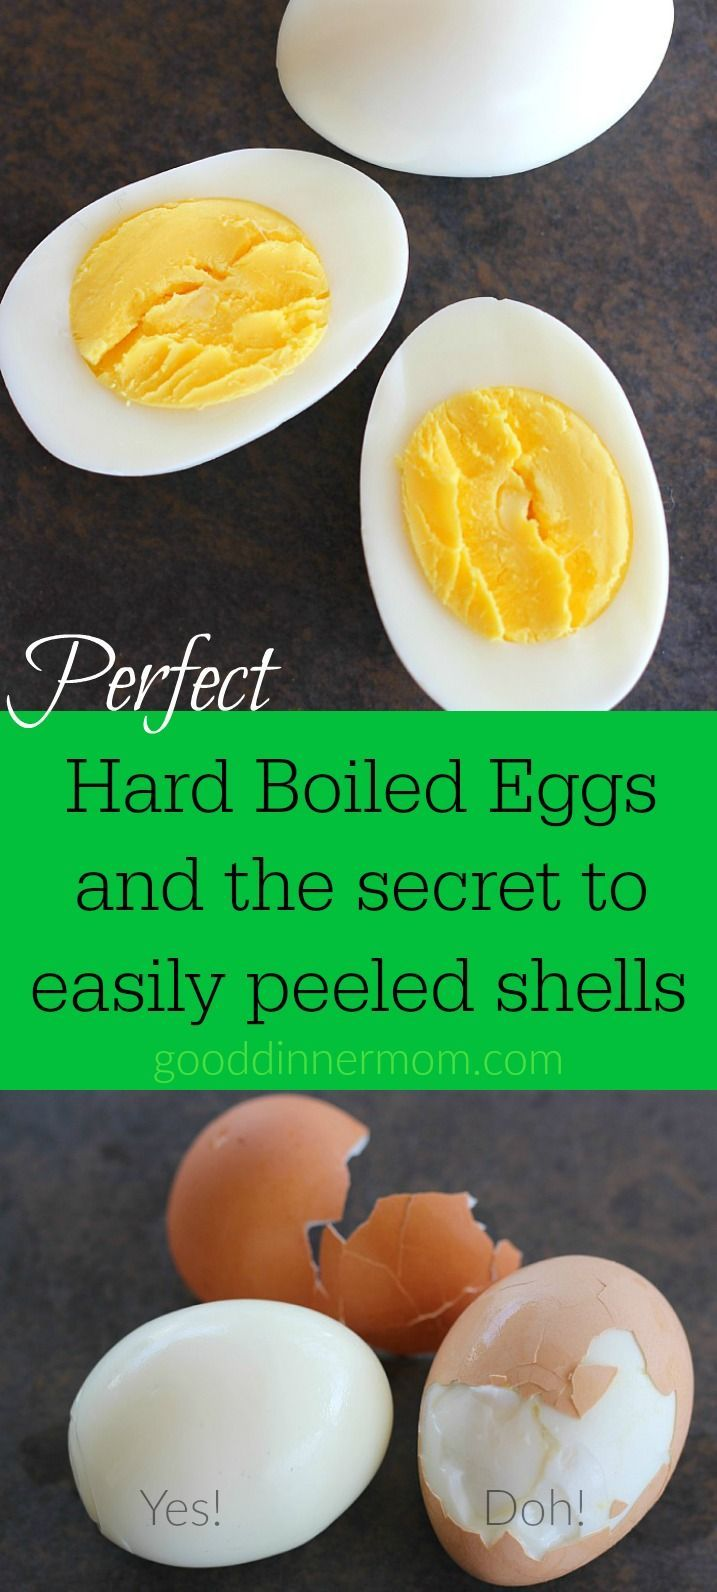 The 25+ Best Hard Boiled Ideas On Pinterest  Boiled Eggs, How To Boil Eggs  And Cooking Hard Boiled Eggs